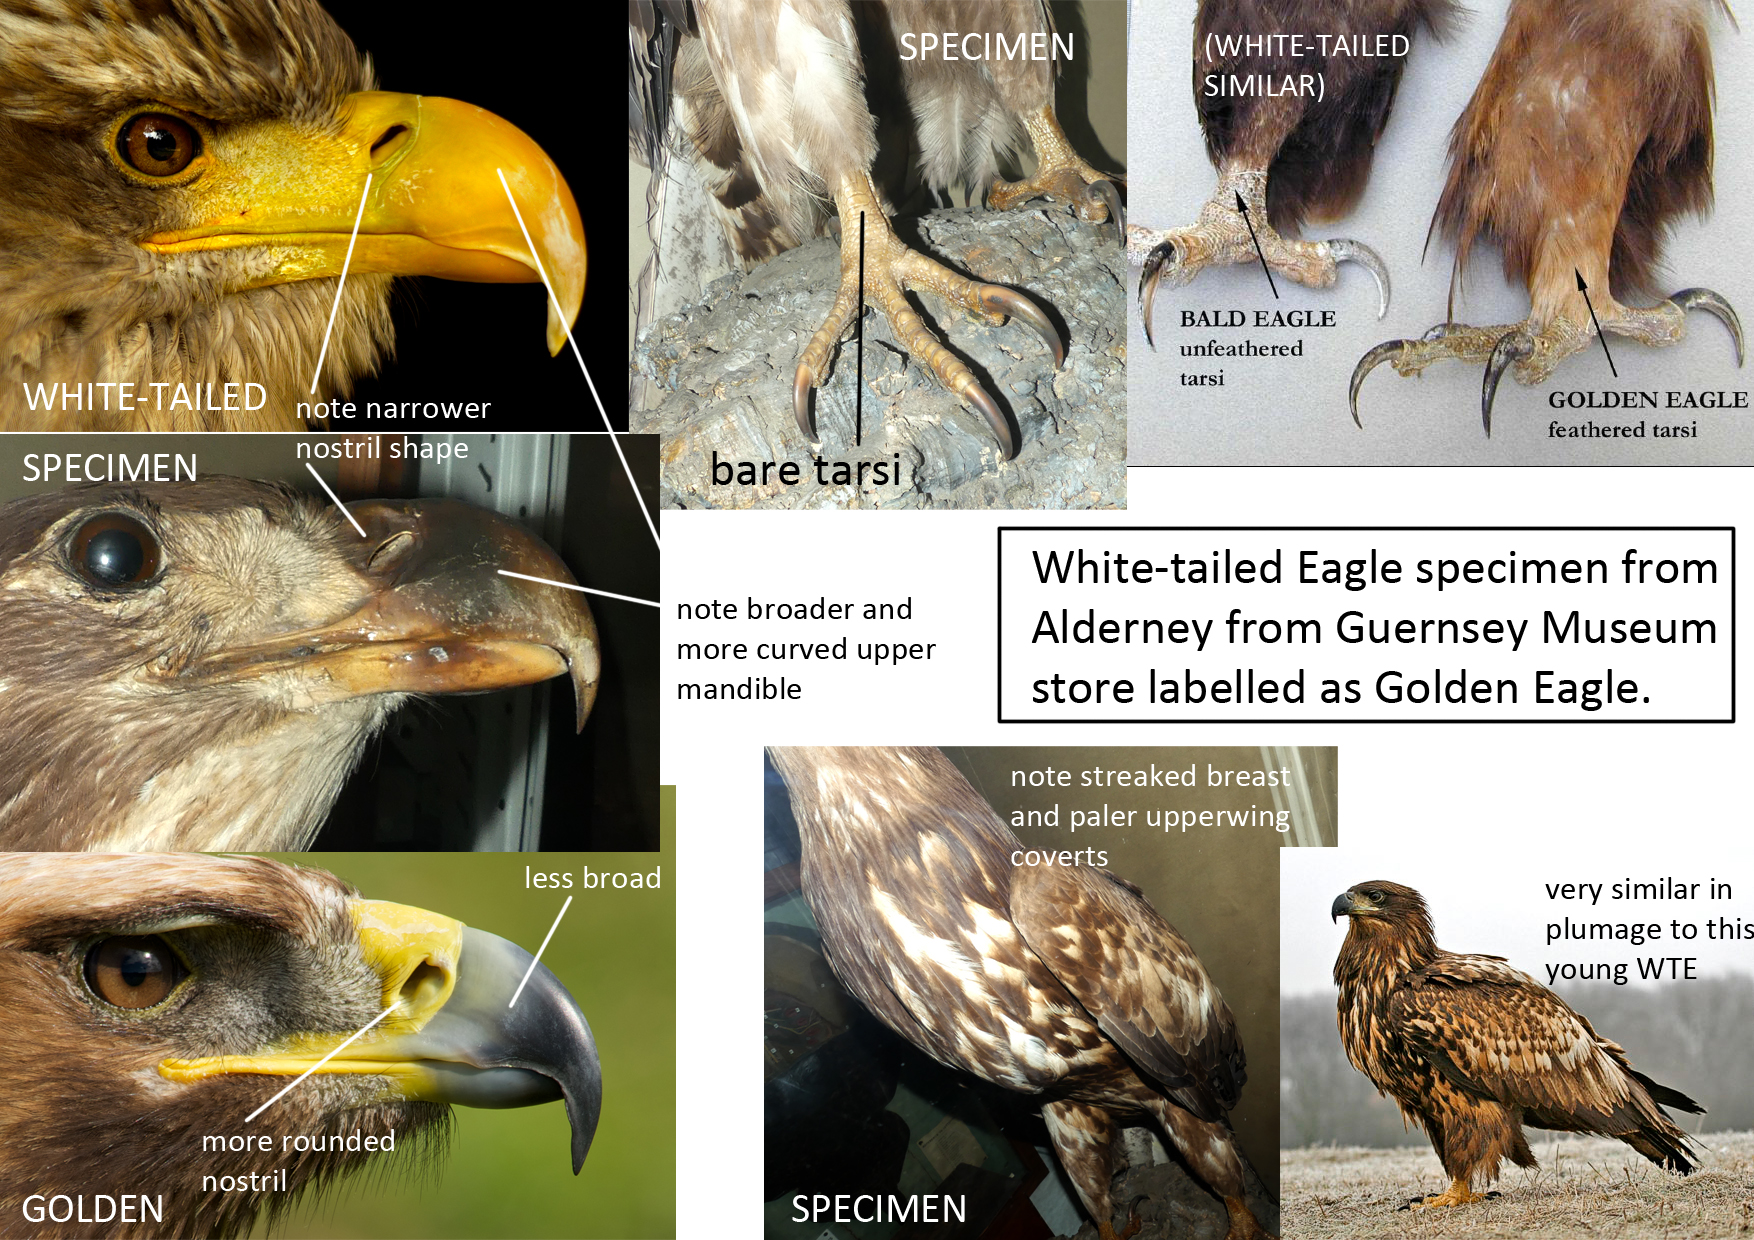 The key features as to why the bird was White-tailed rather than Golden.